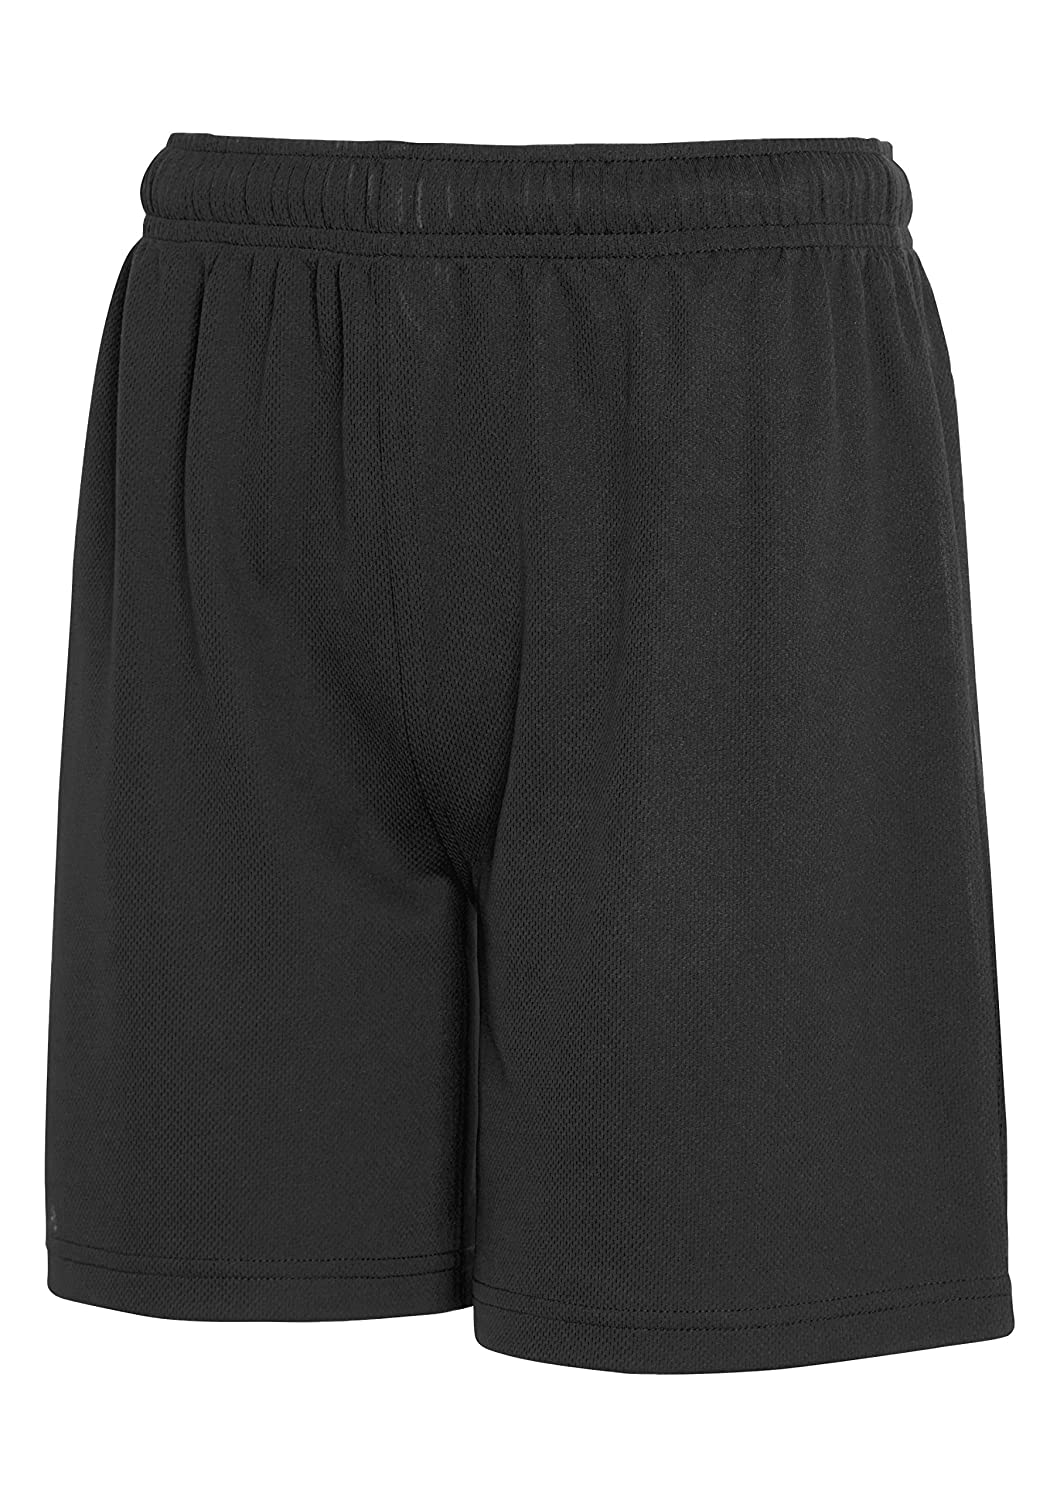 22-30 Inch Waist 4 Colours Fruit of the Loom Kids Performance Shorts